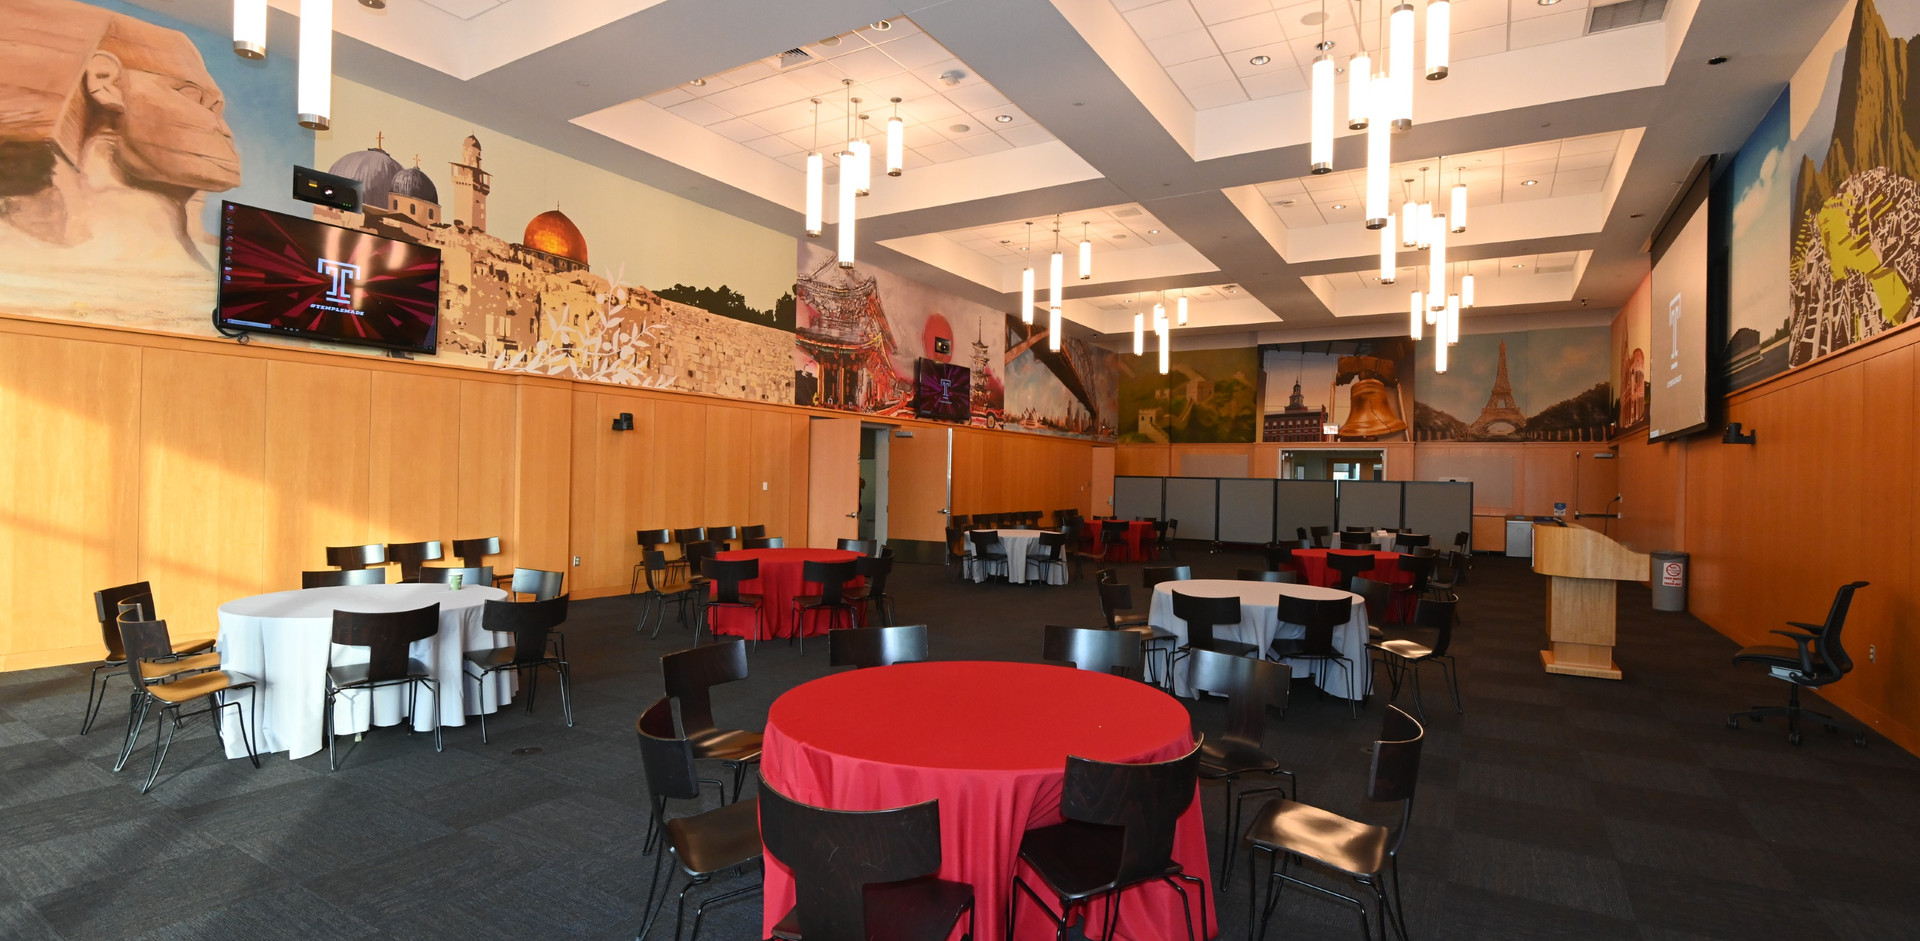 Temple University Alter Hall and Fox Sch